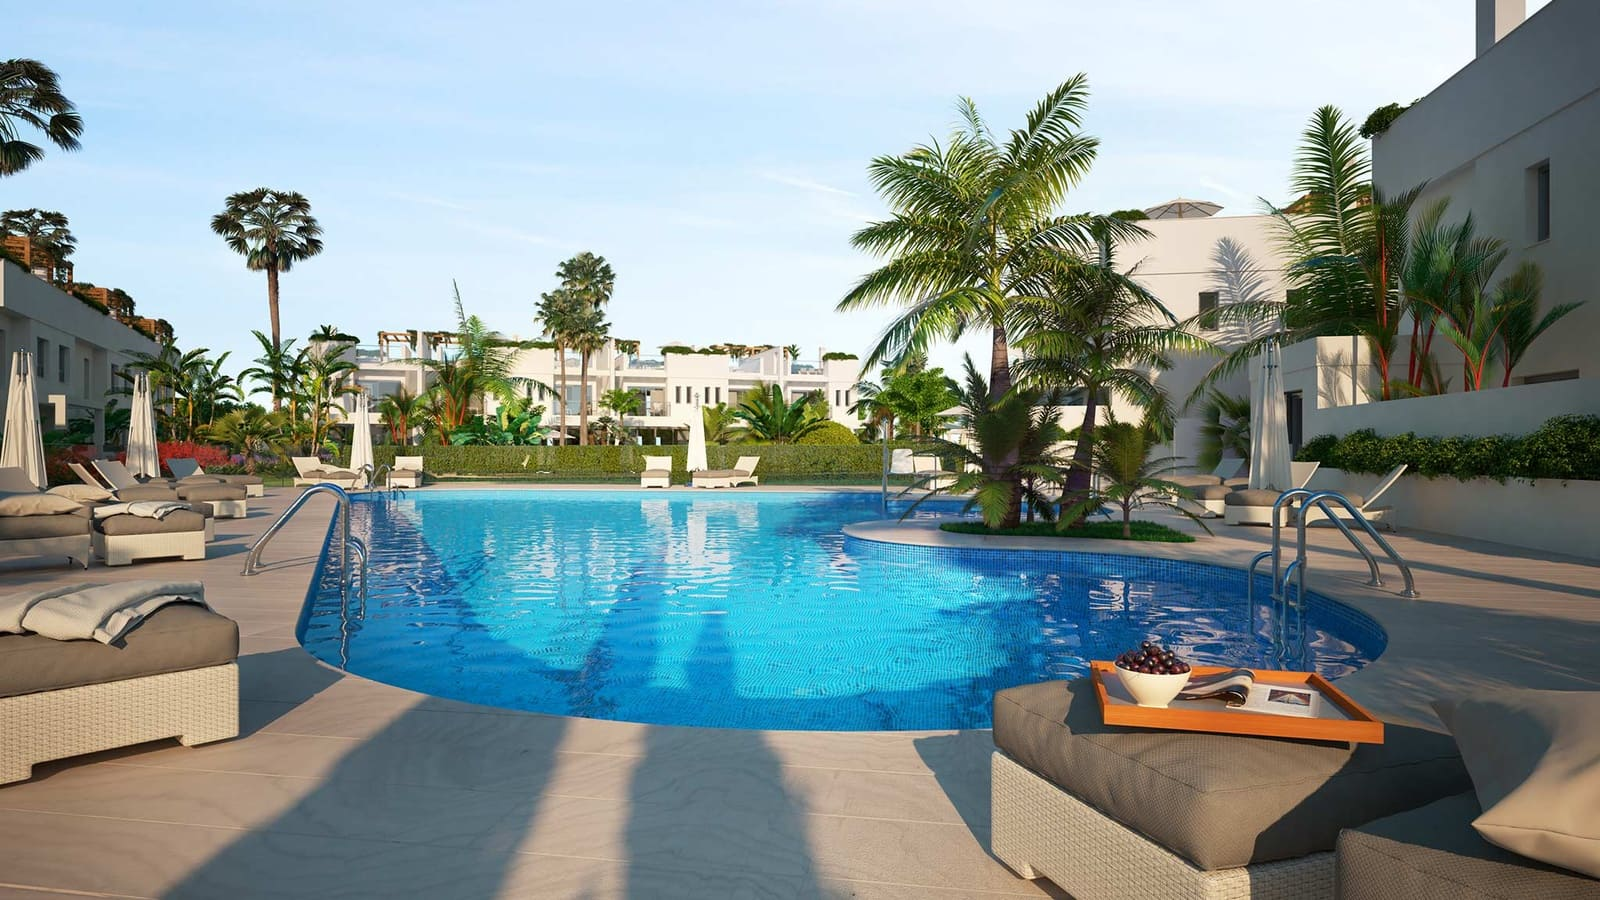 3 bedroom Townhouse for sale in Marbella with pool garage - € 415,000 (Ref: 4704122)